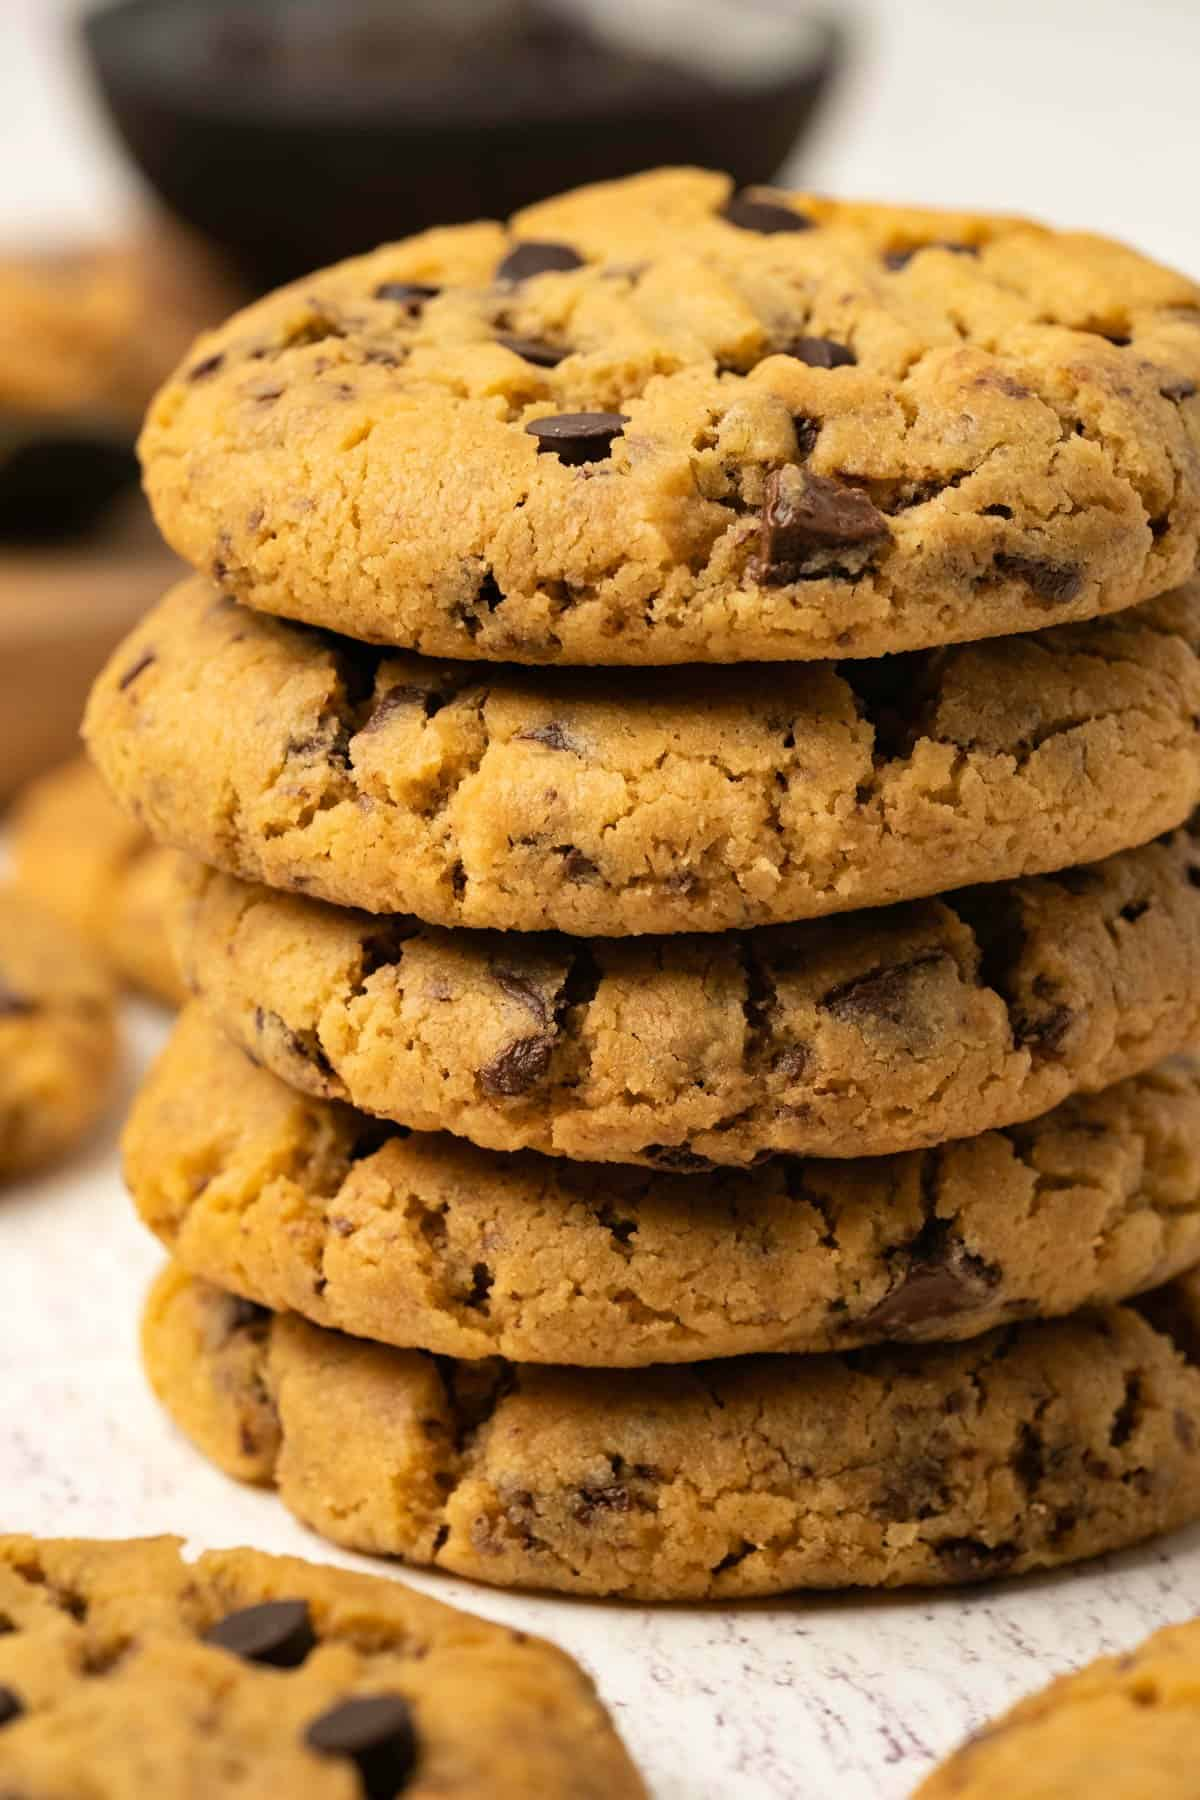 A stack of peanut butter chocolate chip cookies.